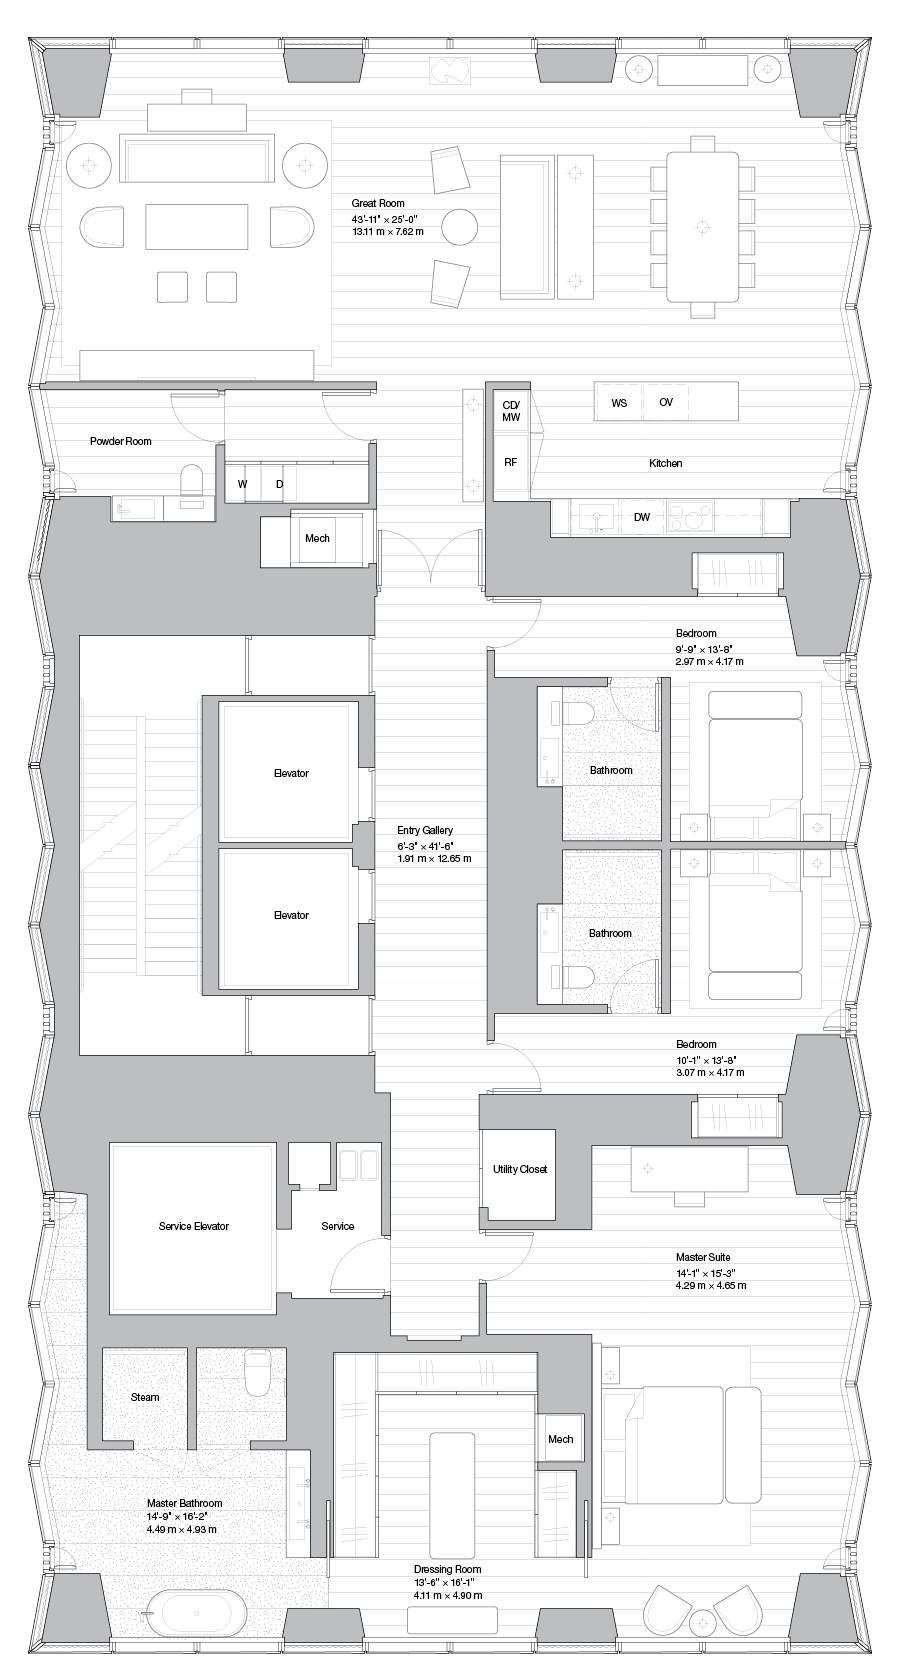 Luxury Midtown Condos Lofts Penthouses For Sale 100e53 Residence 49a Nyc Apartment Luxury Floor Plans Apartment Floor Plan